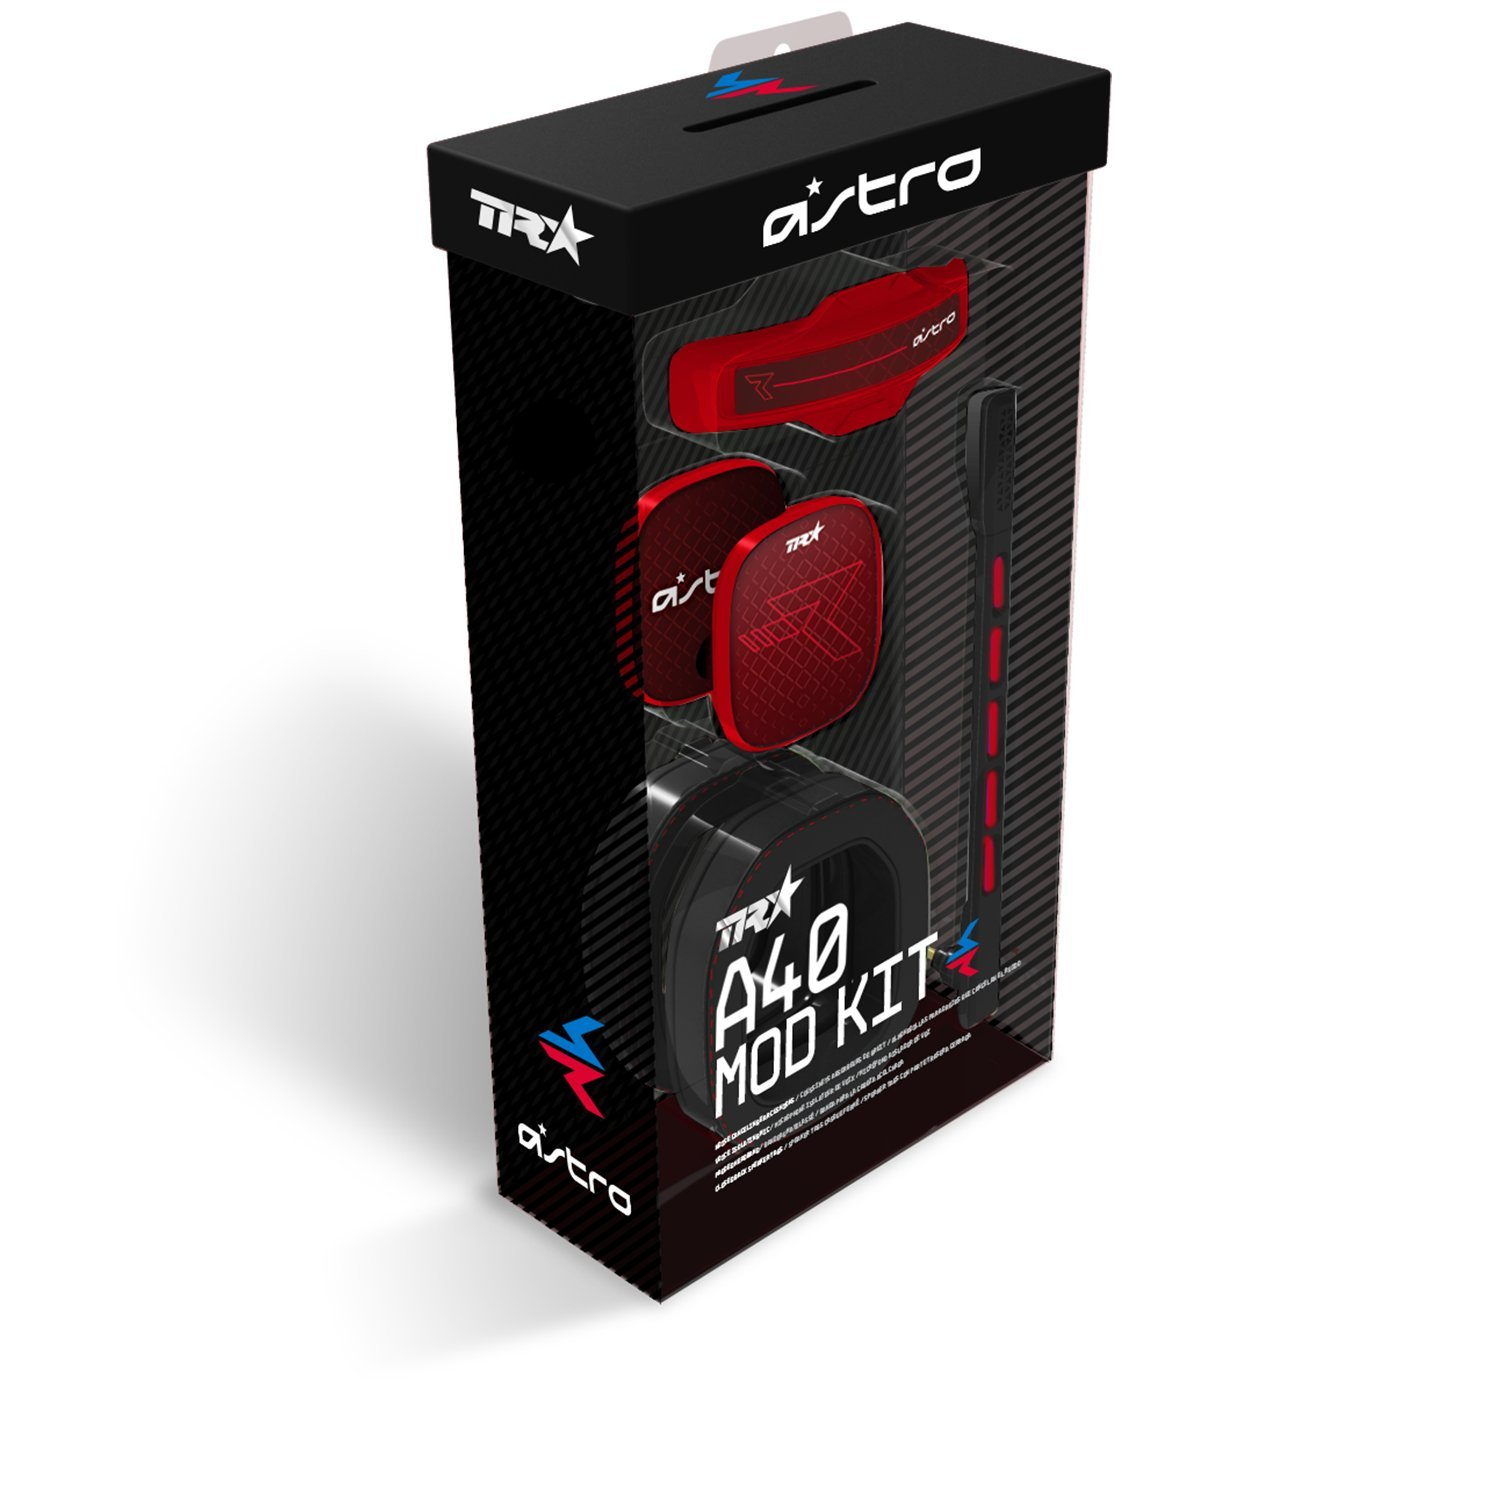 ASTRO Gaming A40 TR Mod Kit, Noise Cancelling Conversion Kit - Red by ASTRO Gaming